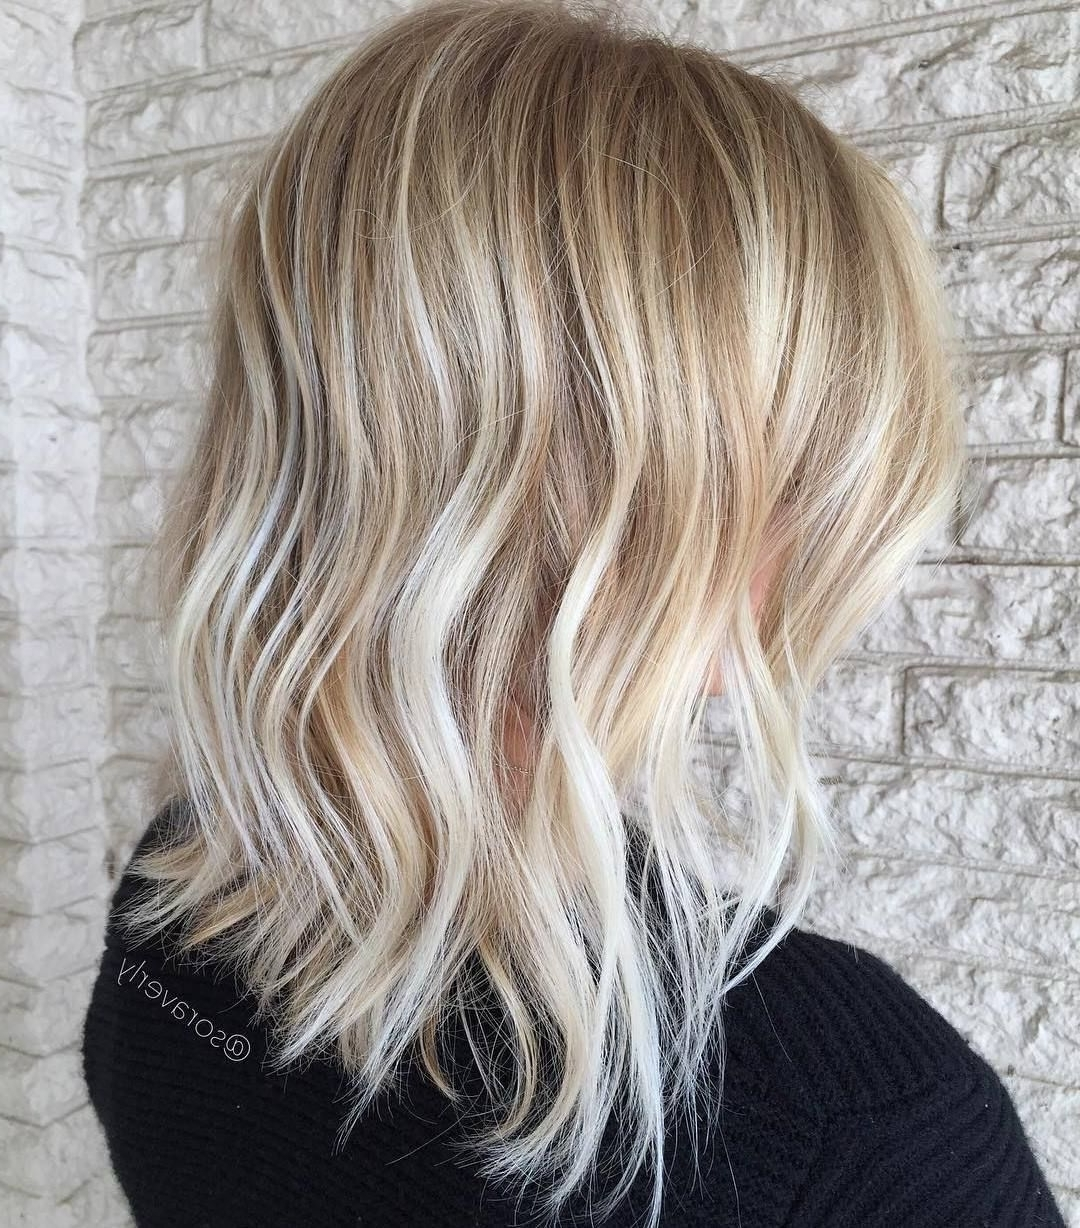 Pin On Ap Hair Blonde Hairstyles For Medium Length Hair